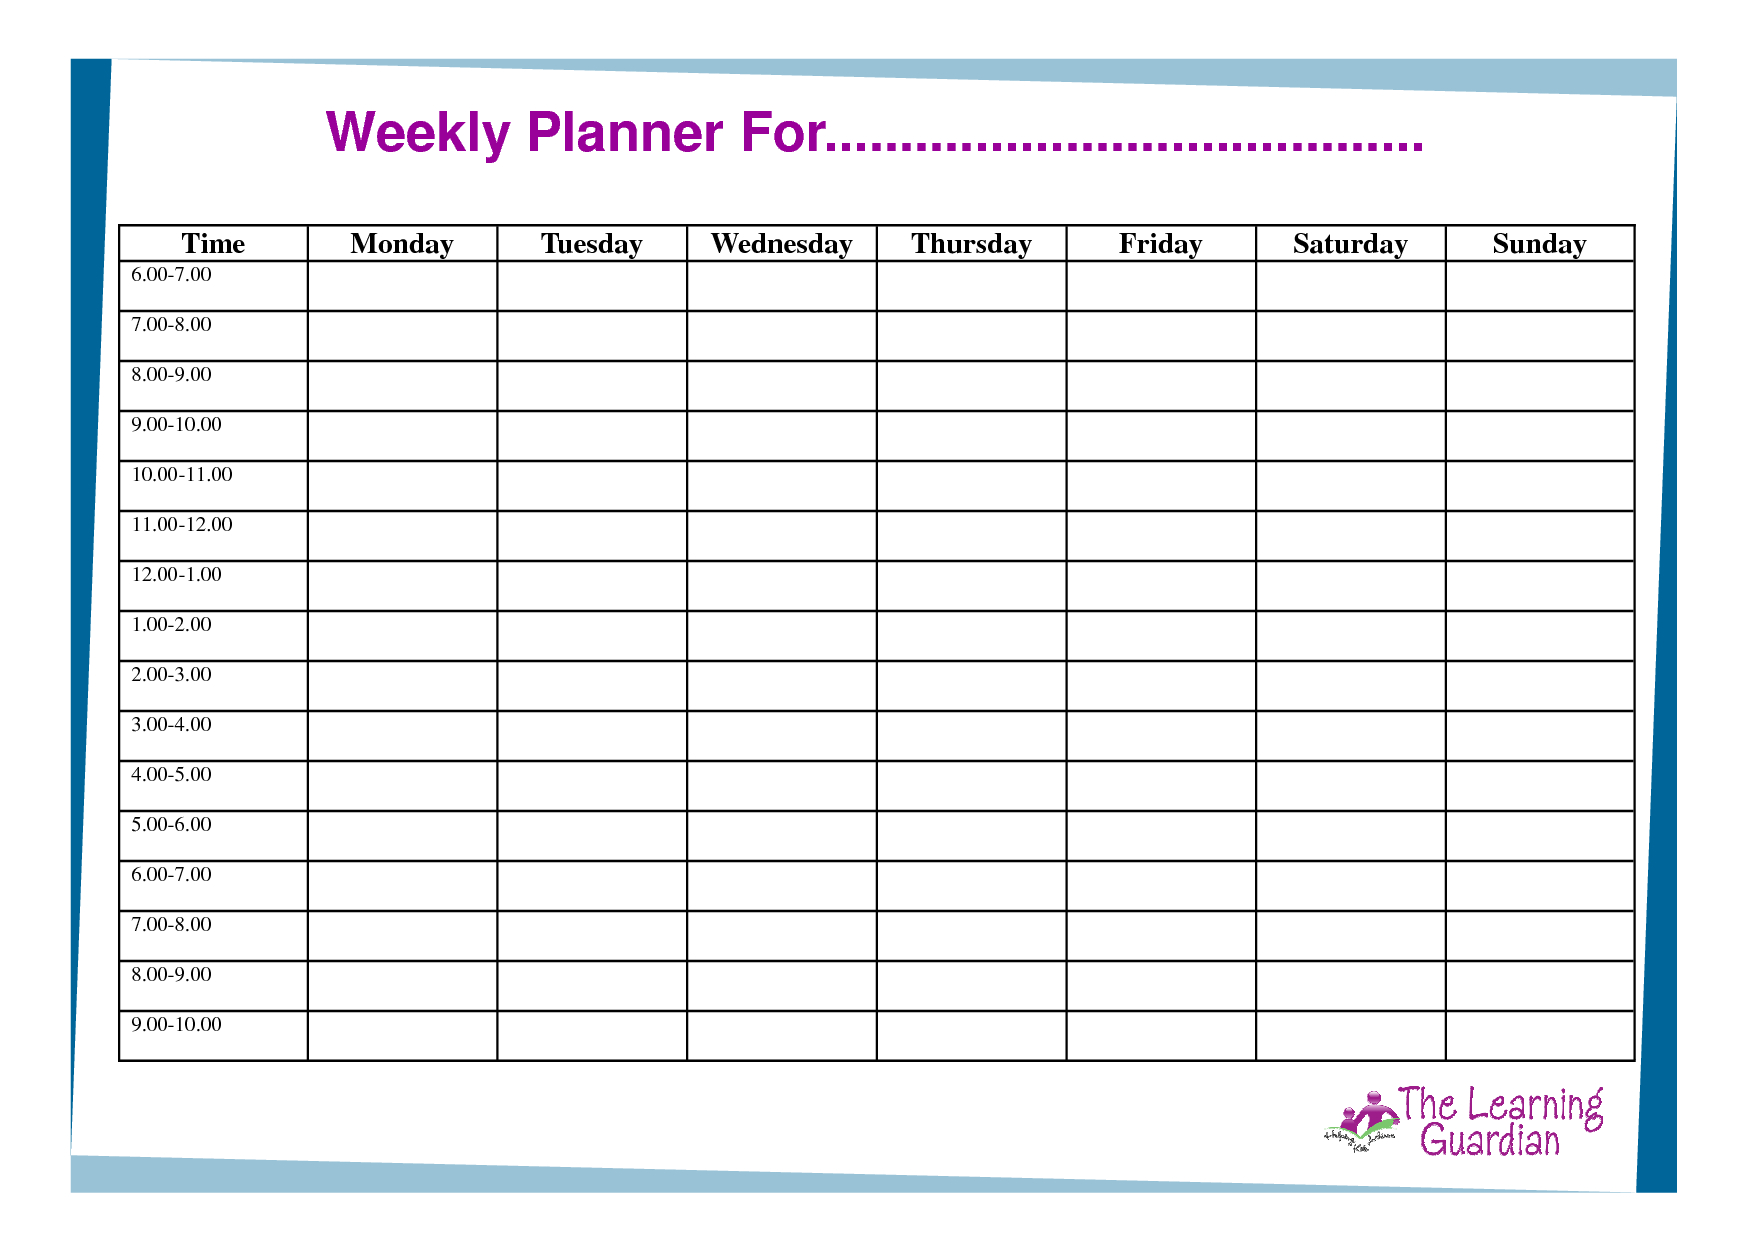 Free Printable Weekly Calendar Templates | Weekly Planner throughout 7 Day Weekly Calendar Template